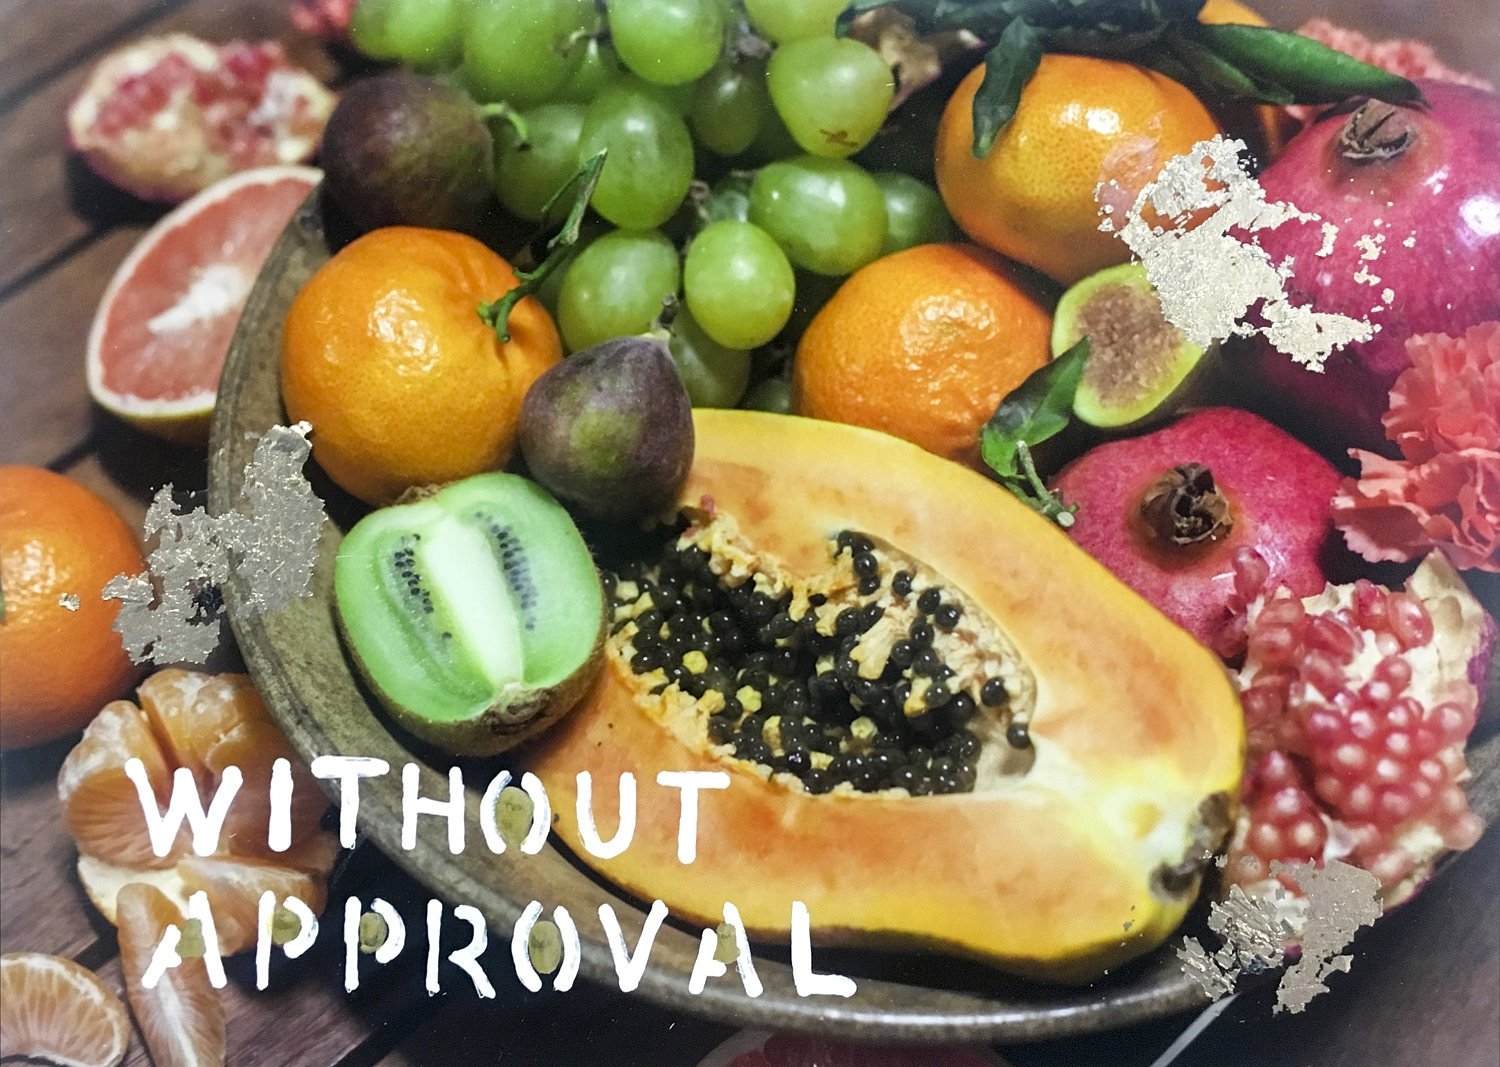 without approval  by Talia Shipman